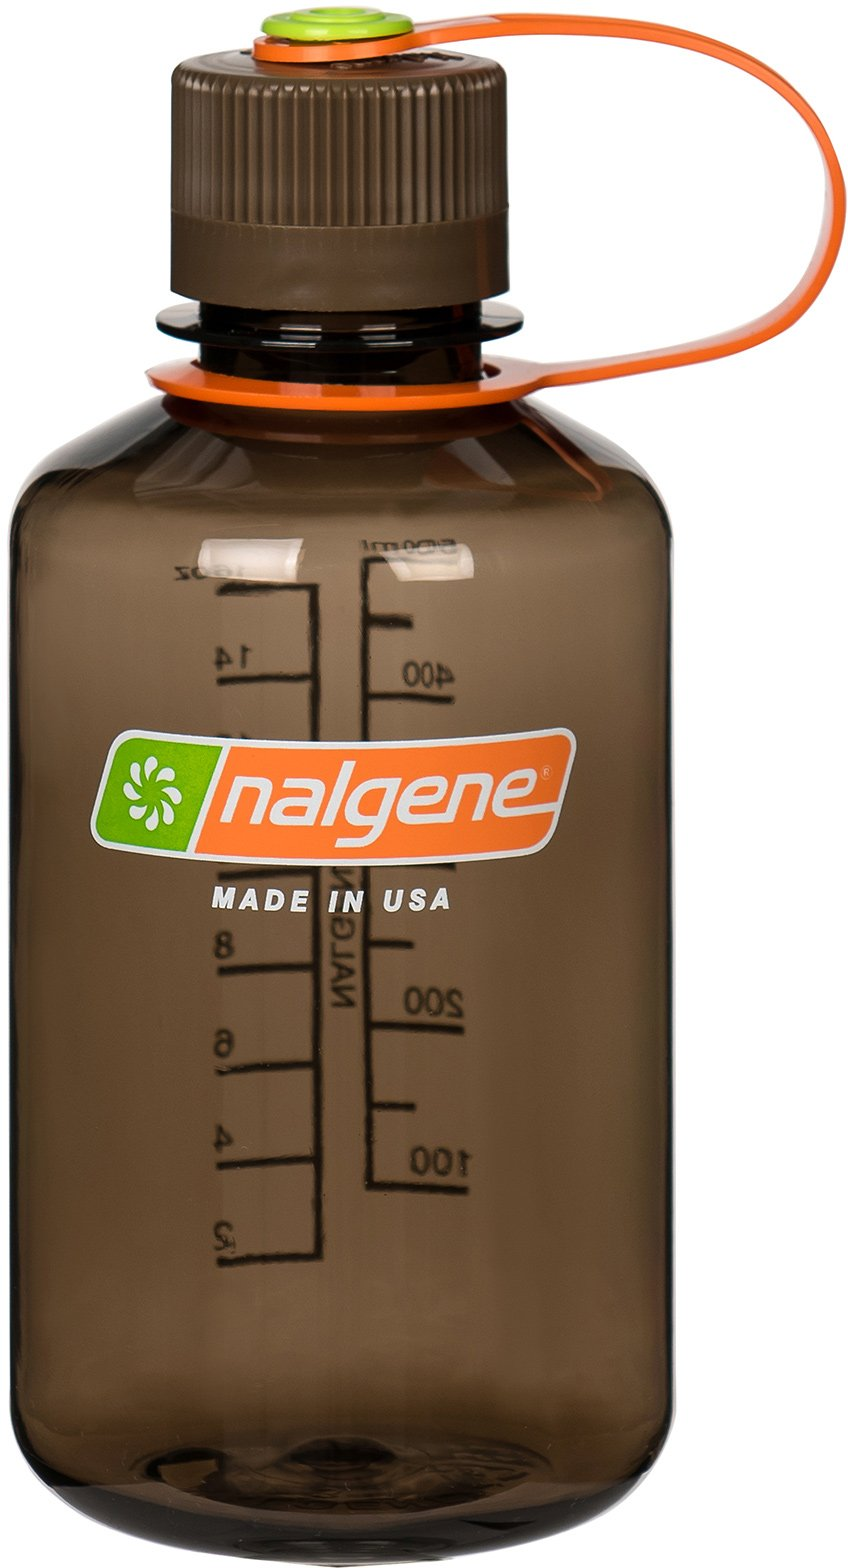 Nalgene Narrow-Mouth 500 mL Woodsman/2078-2066